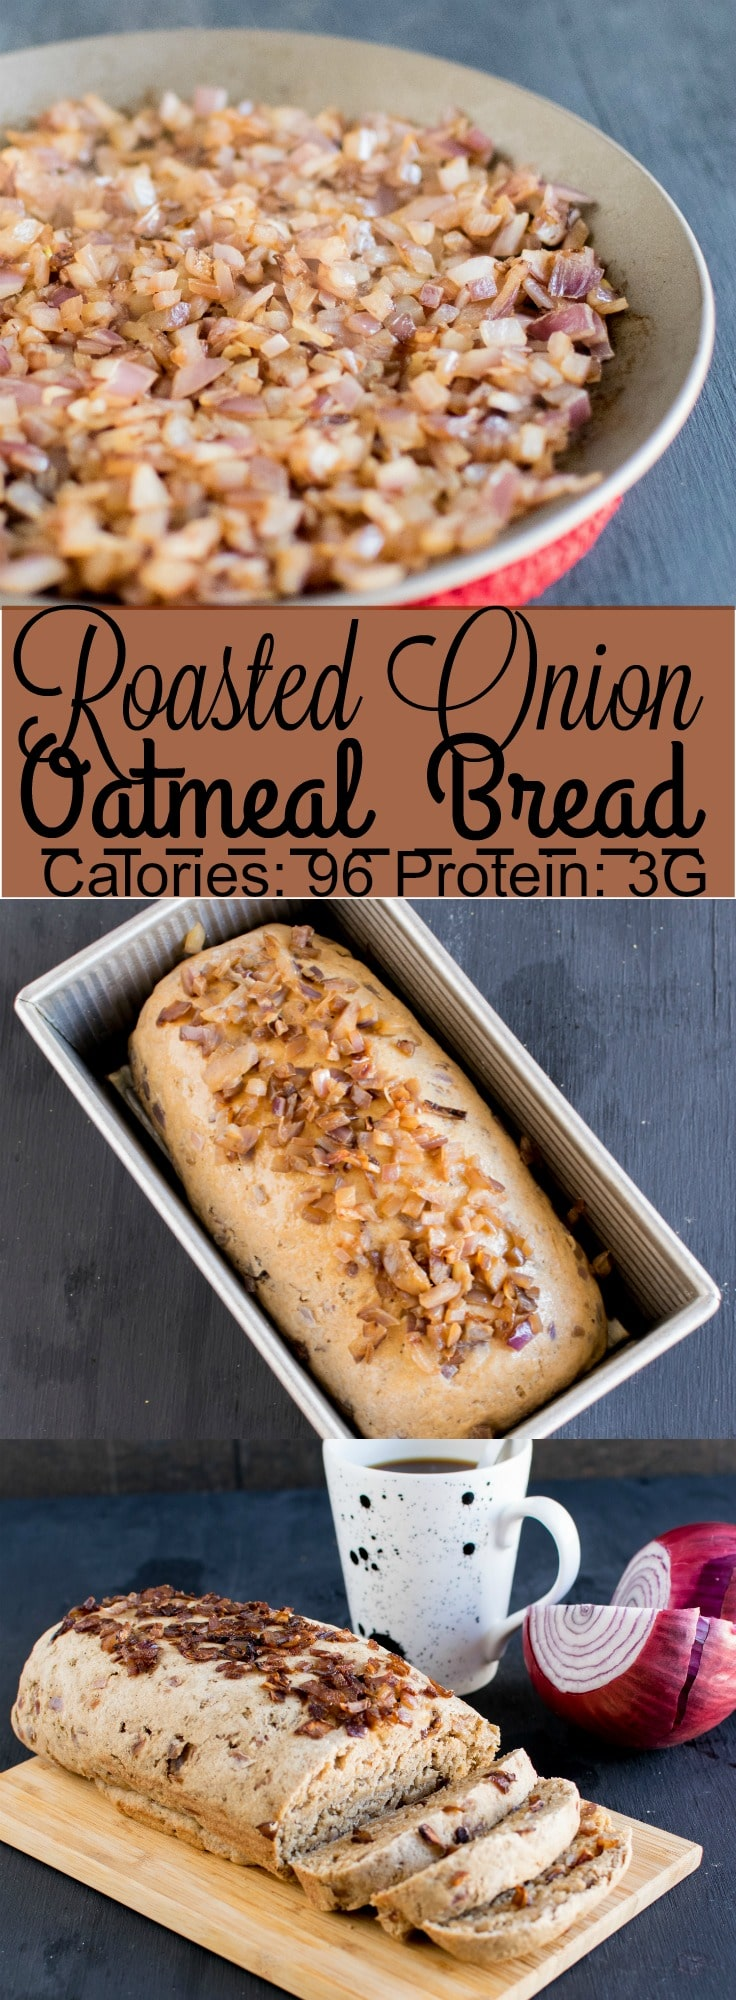 Roasted Onion Oatmeal Bread - fresh onions roasted to brown and combined into oat flour and risen with the help of yeast and baked into soft and fluffy bread loaf is a perfect brunch or snack that tastes delicious with a generous spread of butter/margarine or can be enjoyed as a sandwich | kiipfit.com